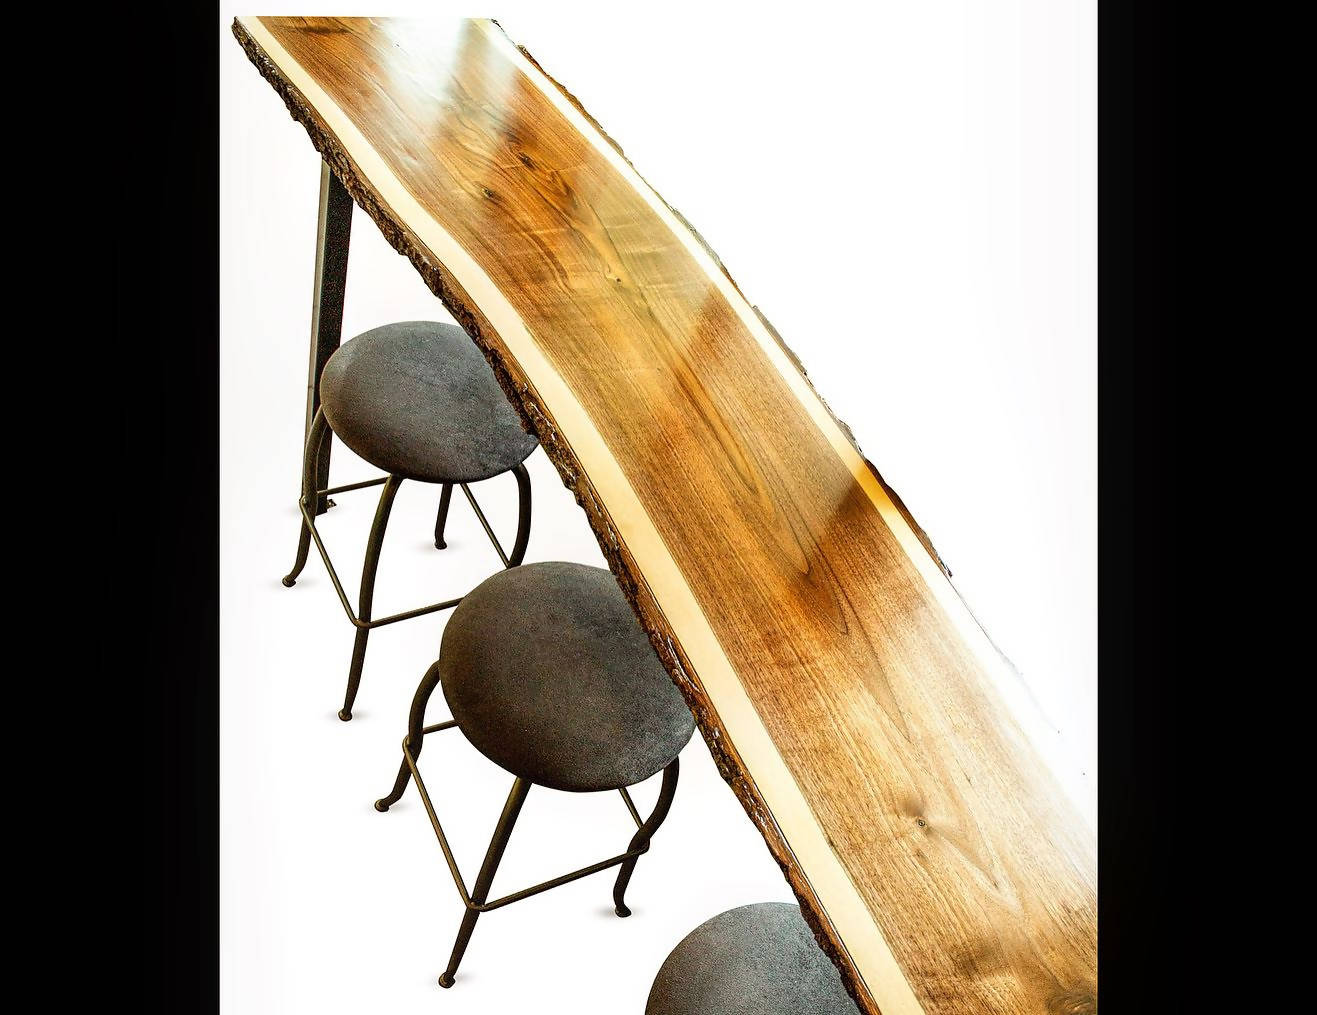 Custom Order Live Edge Bar-Height and Sofa Tables - Cave Market Artisan Home Goods and Furniture